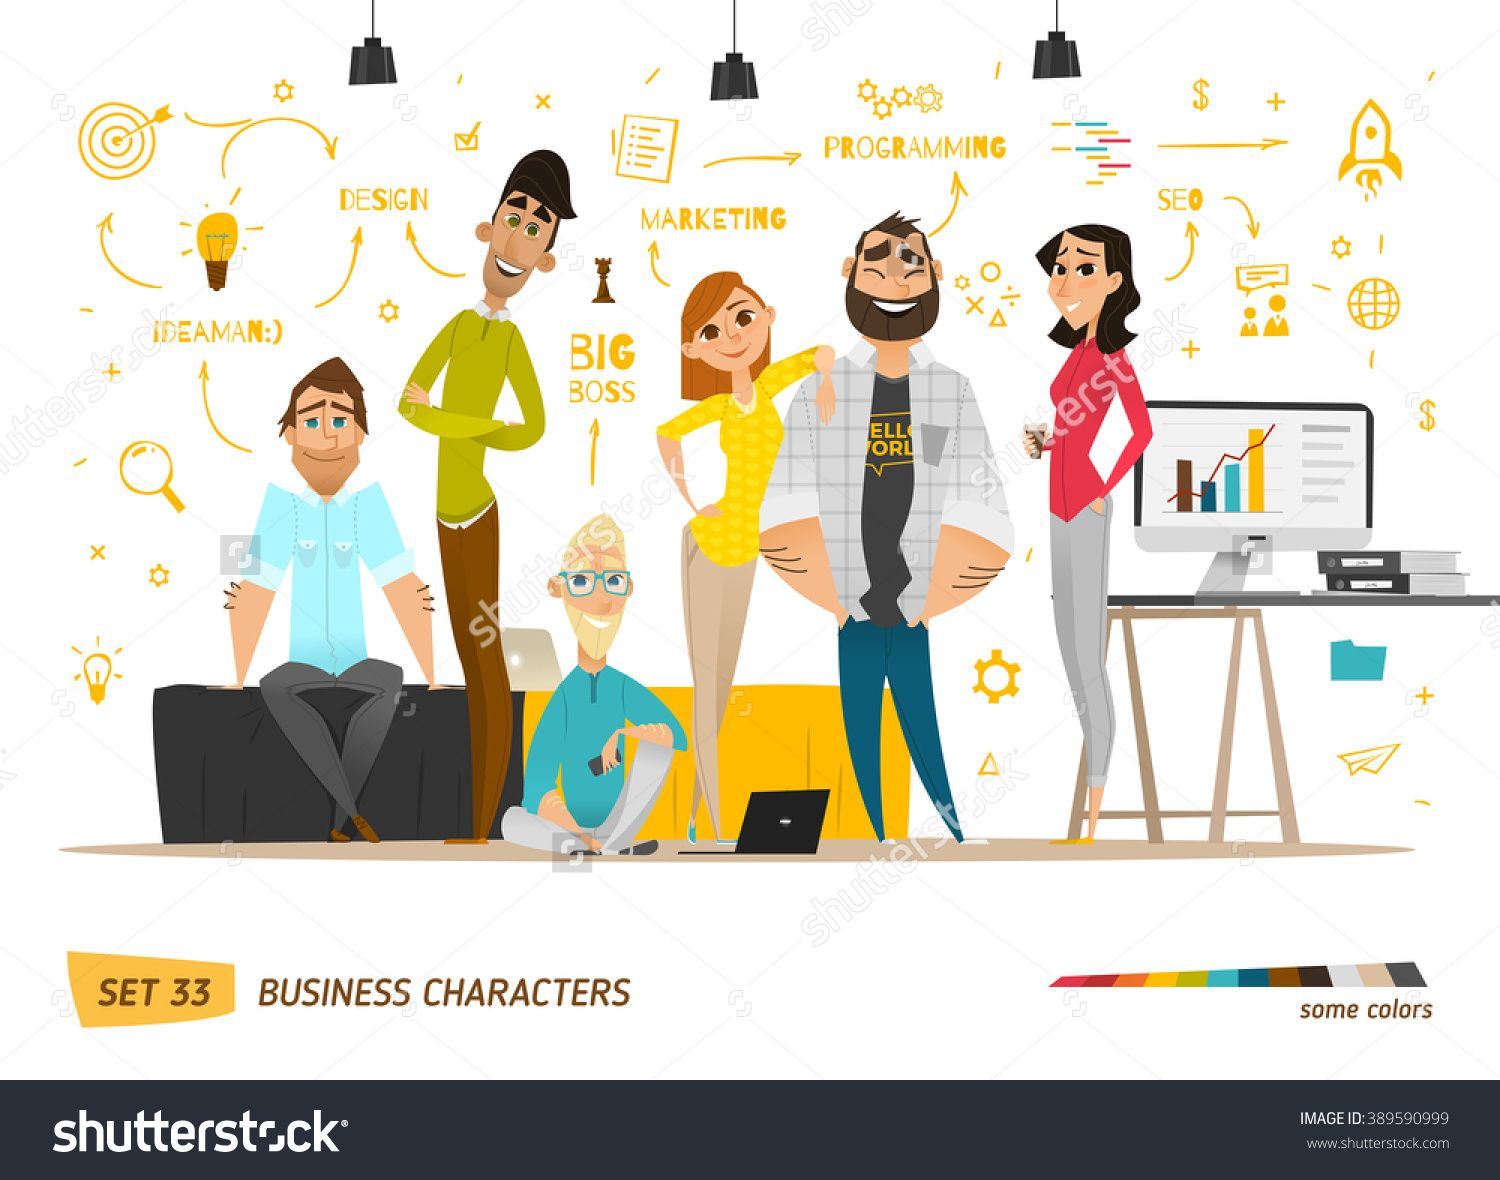 Business Characters Scene. Teamwork In Modern Business Office. Stock Vector Illustration 389590999 : Shutterstock